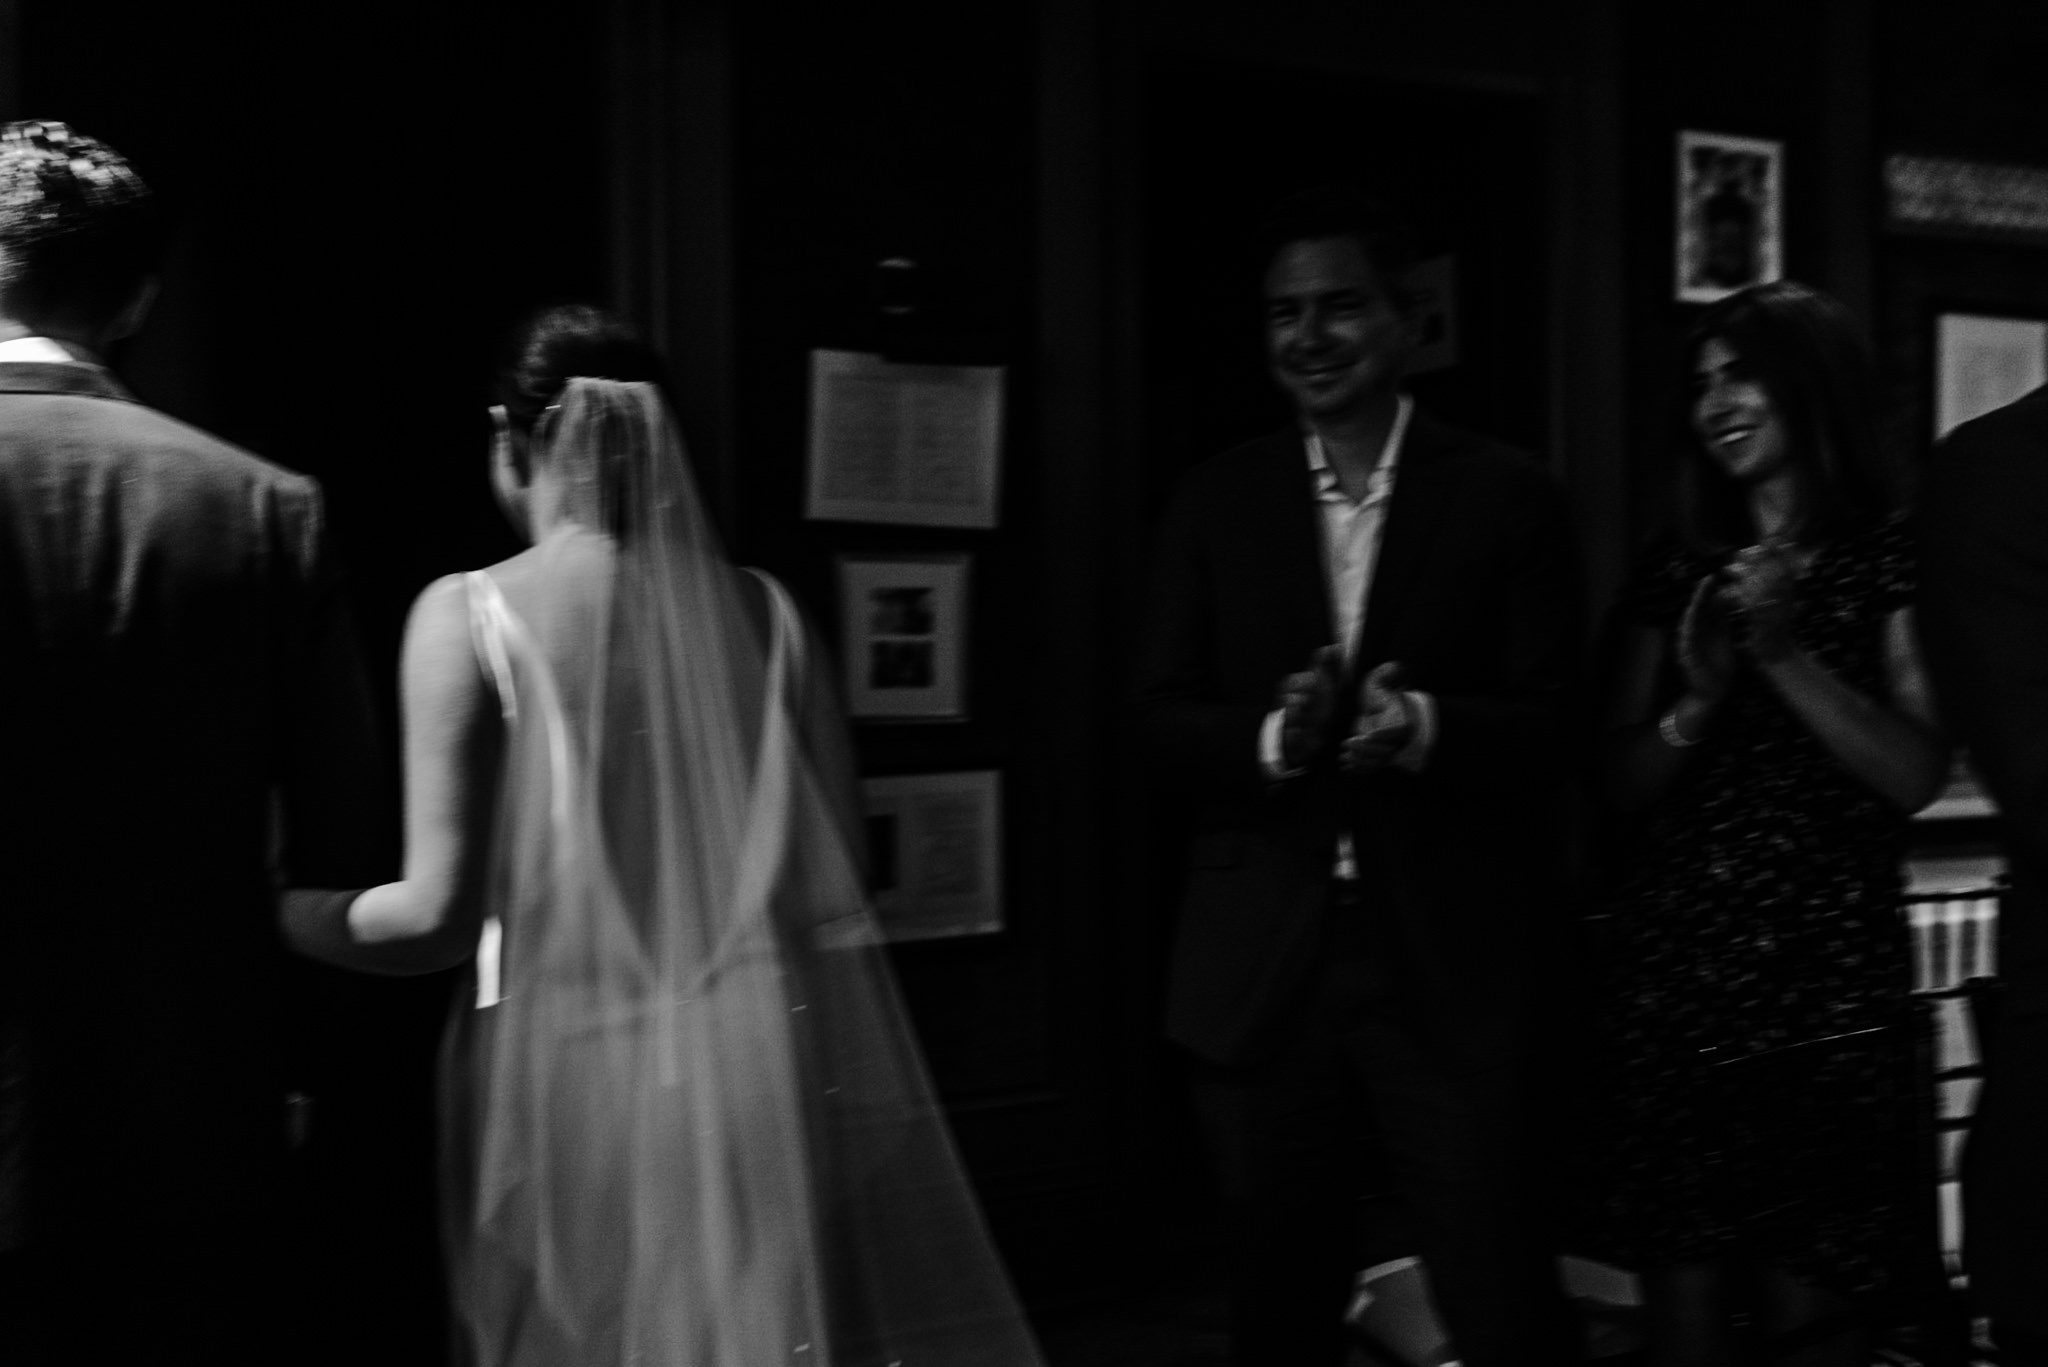 095-guests-candids-cocktail-reception-wedding-downtown-toronto.jpg